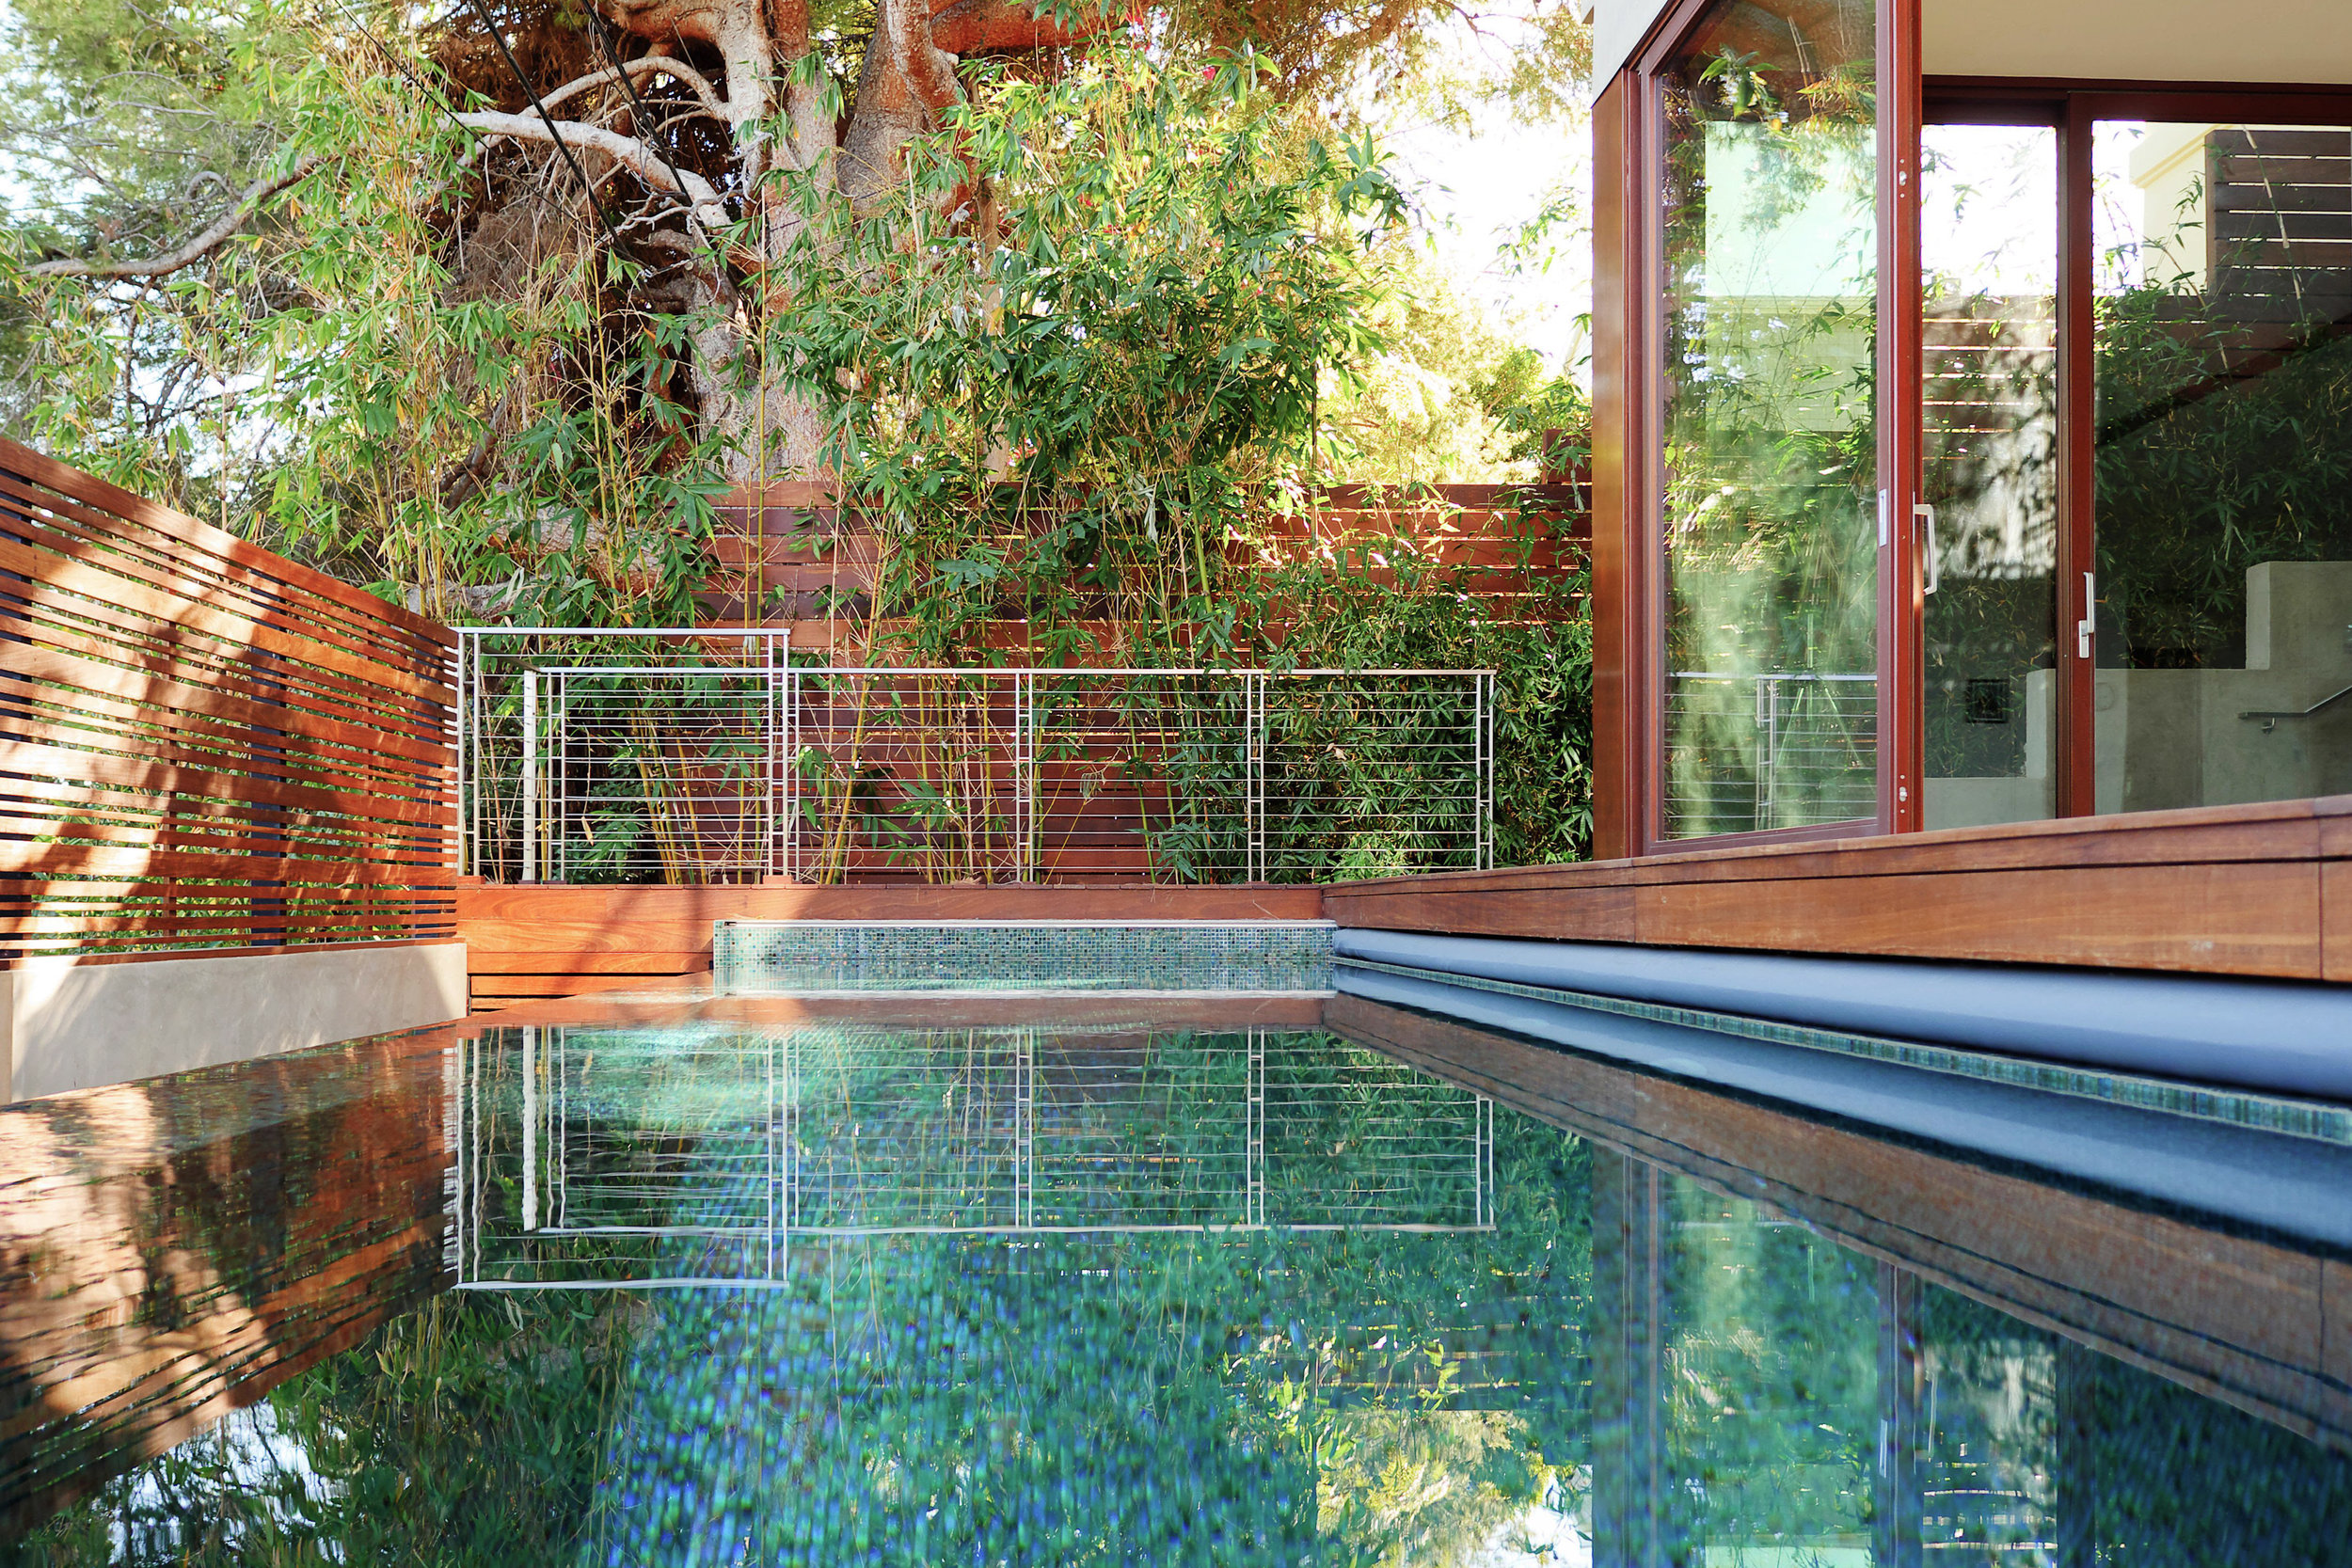 S.E.A.-Studio-Environmental-Architecture-David-Hertz-FAIA-El-Medio-House-Pacific-Palisades-sustainable-regenerative-restorative-design-residential-contemporary-modern-wood-concrete-patio-green-building-view-pool-tile-garden-westside-living-studioea-5.jpg